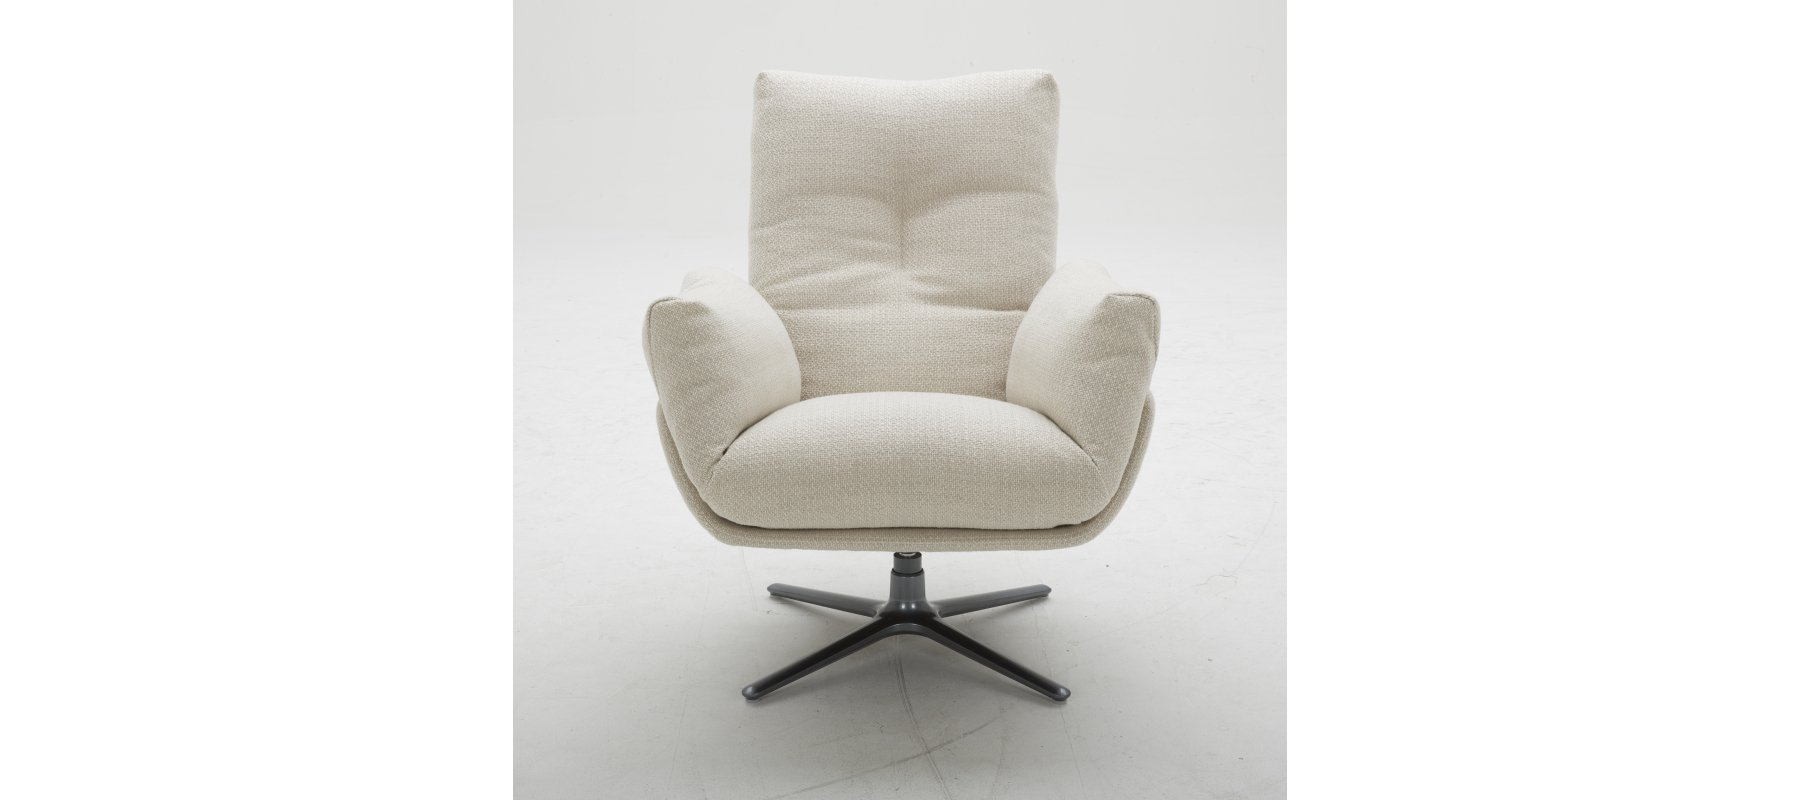 Fauteuil relaxation MALAGA - Largeur 84 cm